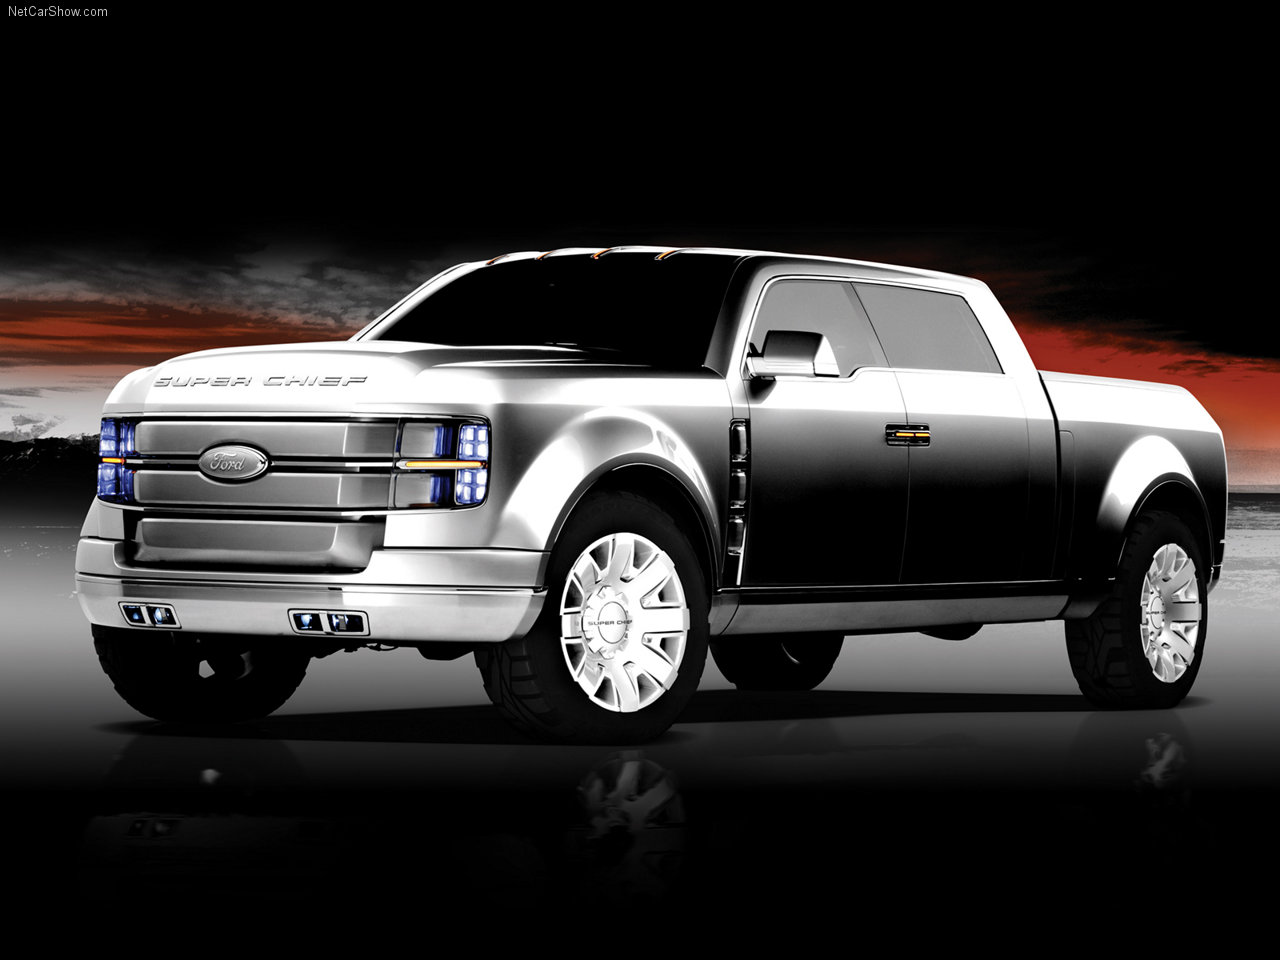 Ford - Populaire français d'automobiles: 2006 Ford F-250 Super Chief ...